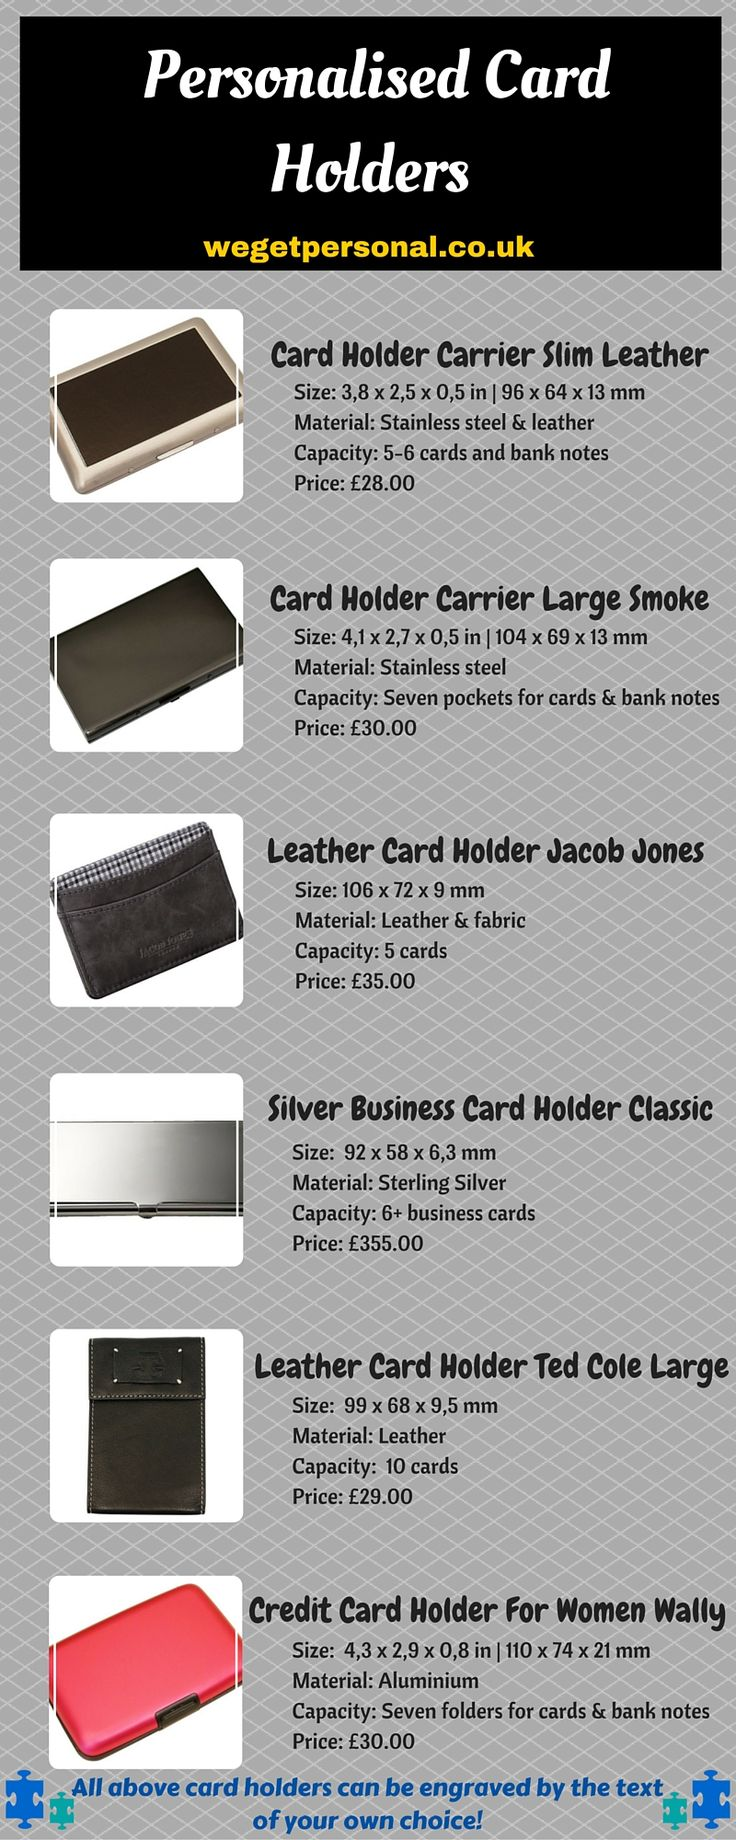 If your are looking for amazing range of personalised card holders, you can never go wrong with We Get Personal UK. It is the online hub of personalised gifts and jewellery. Get the awesome range of card holders and get it engraved by the text of your own choice. Free shipping and quick deliveries available! For any inquiries, email us at info@getpersonal.se #cardholder #LeatherCardHolder #personalisedcardholder #engravedcardholder